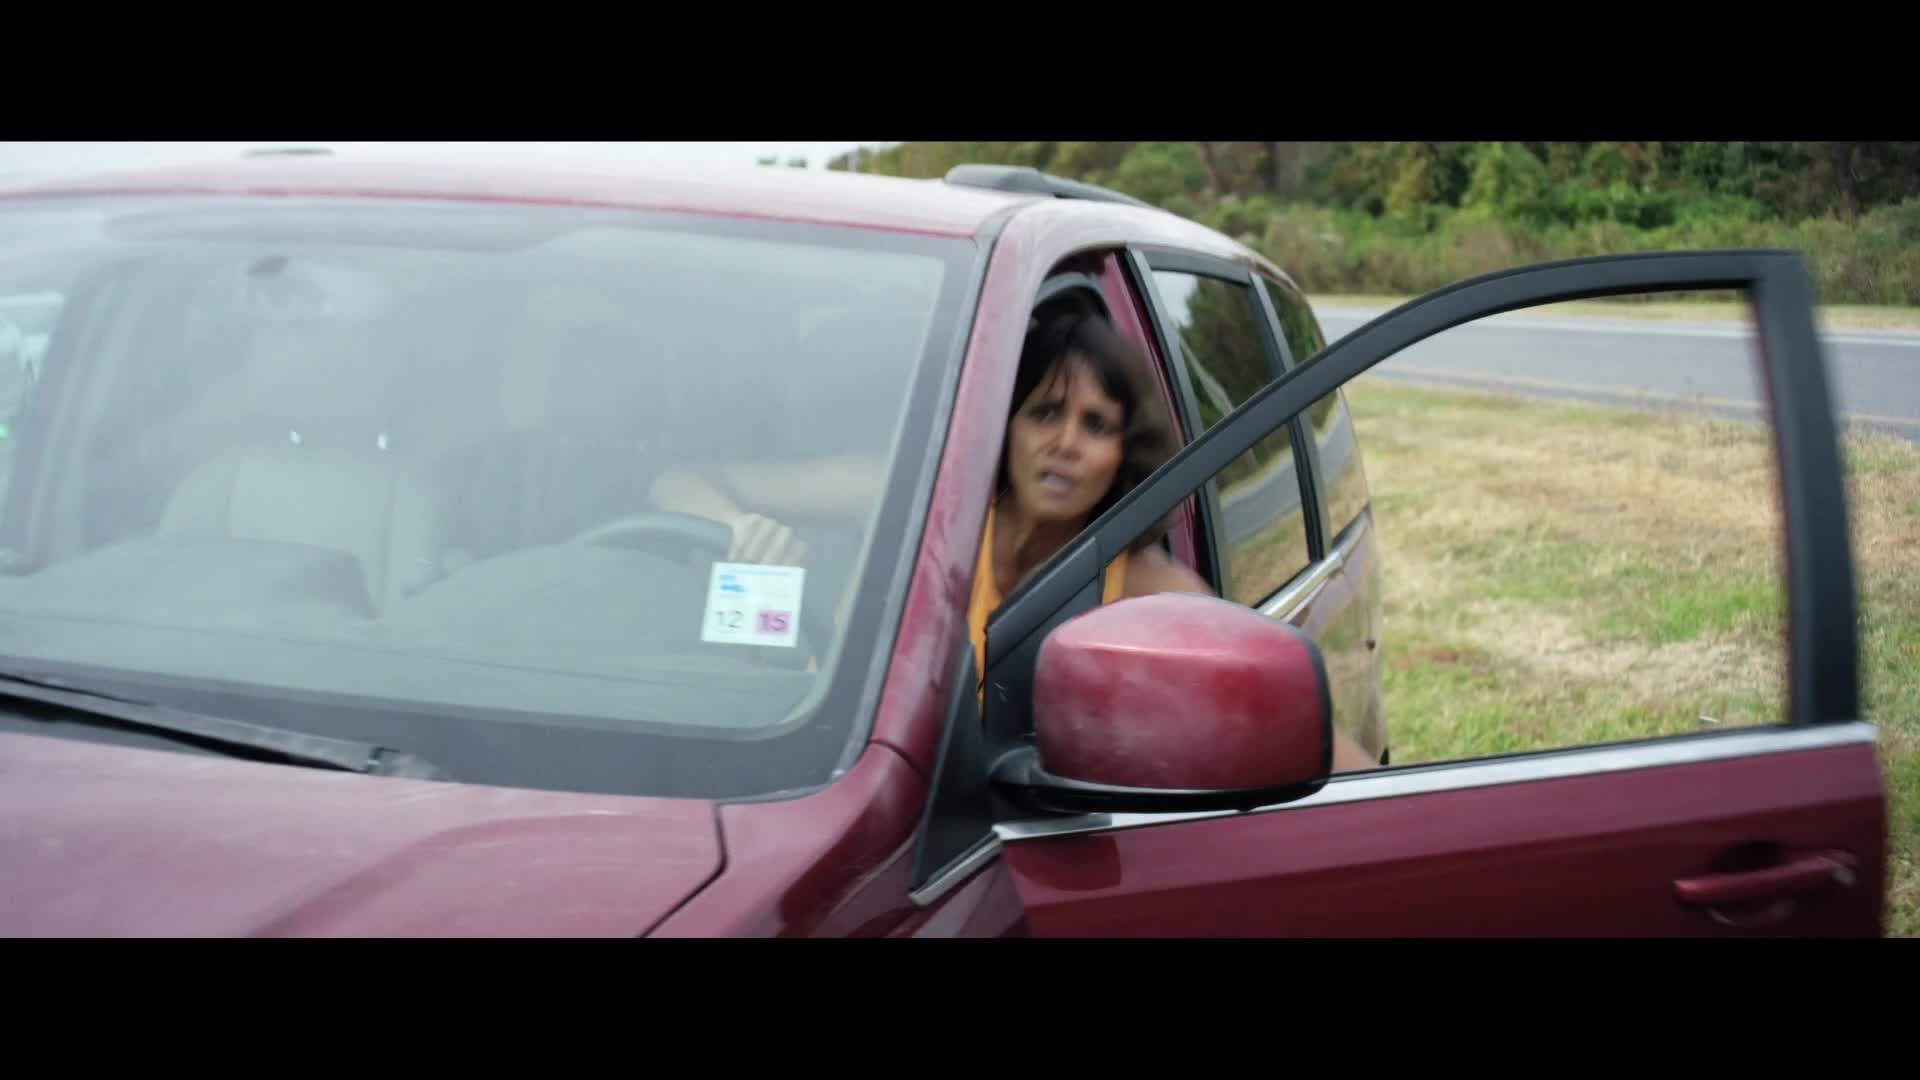 Kidnap full movie kickass torrent